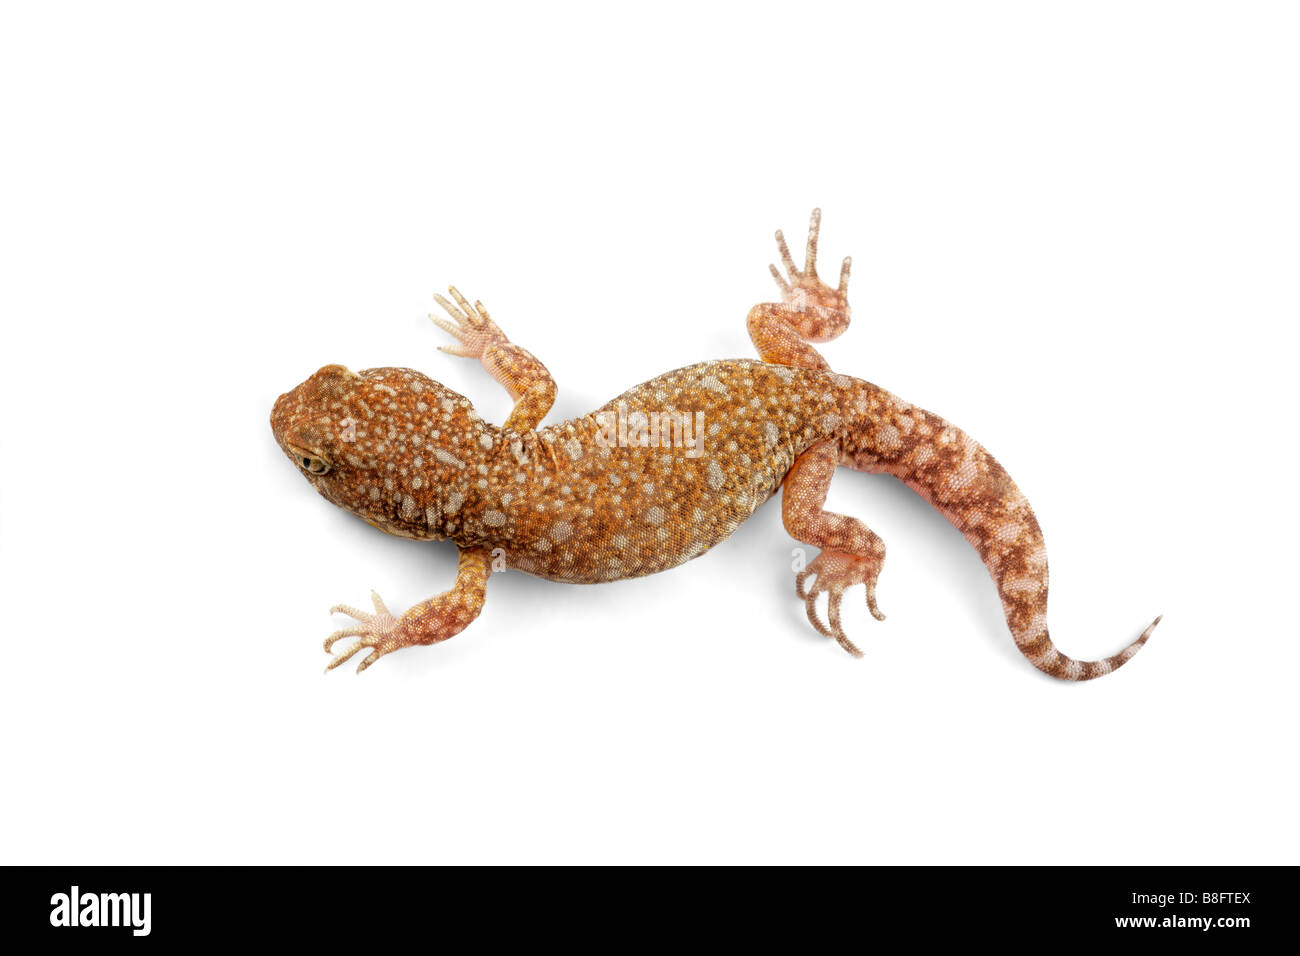 An African common barking gecko (Ptenopus garrulus) on white - Stock Image